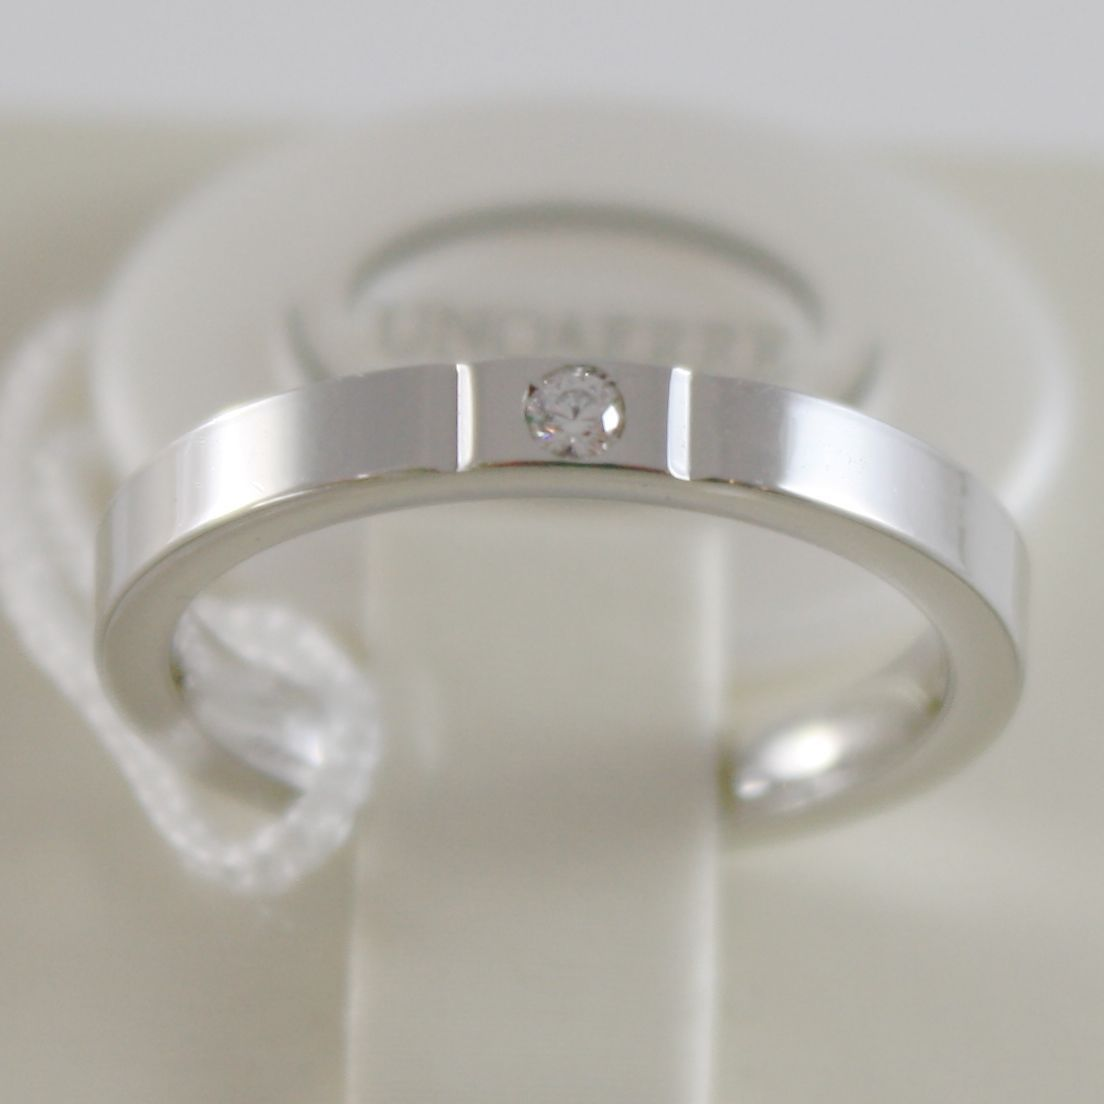 18K WHITE GOLD WEDDING BAND UNOAERRE SQUARE COMFORT RING, DIAMOND MADE IN ITALY